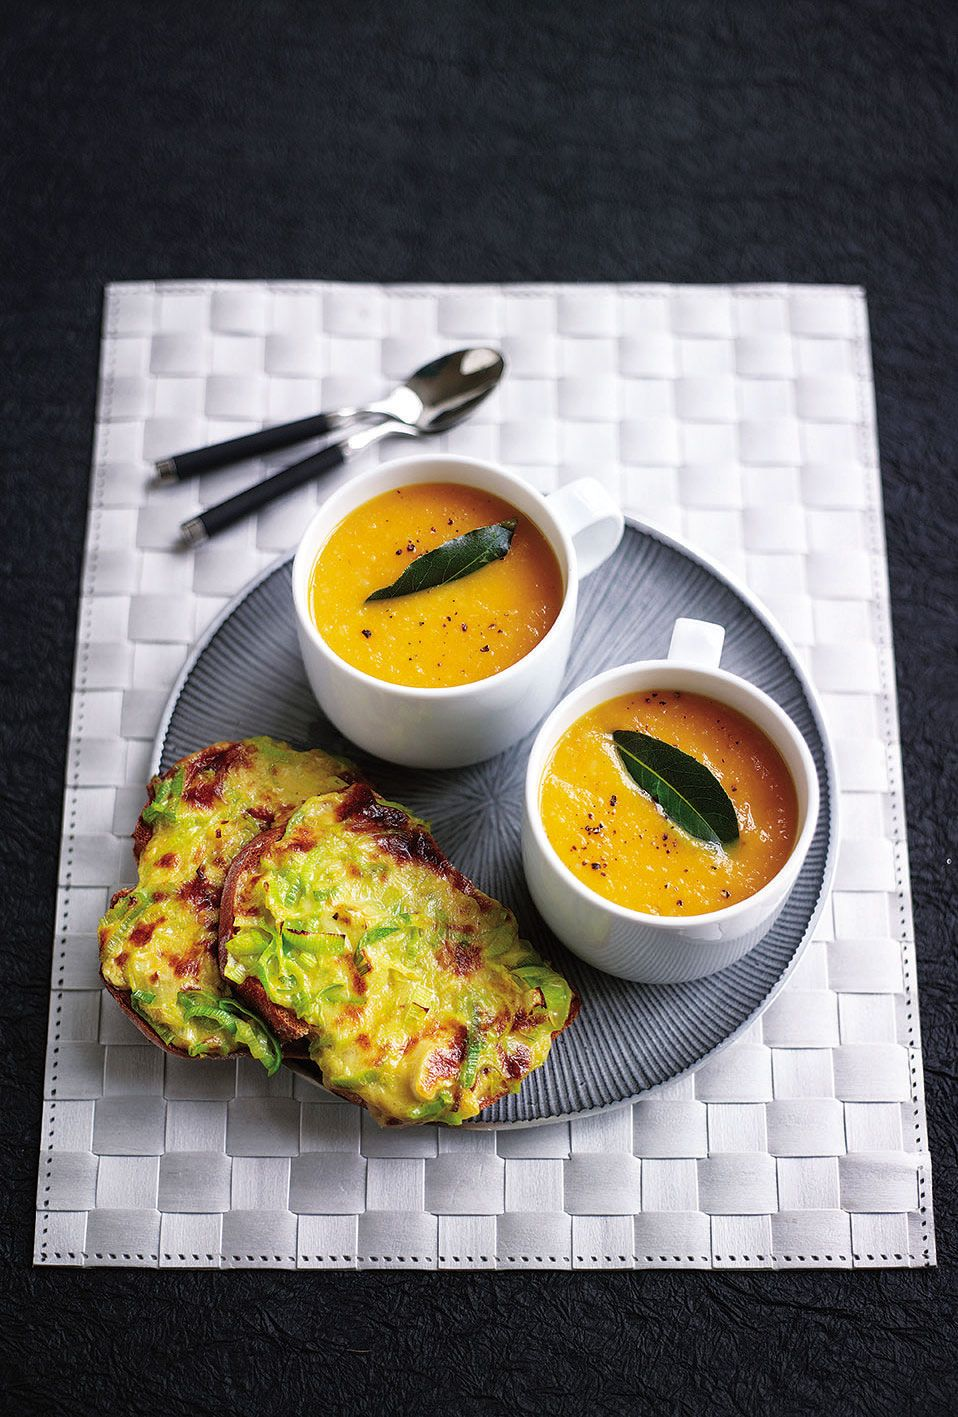 Carrot soup and Welsh rarebit with mustard and leeks recipe | delicious. magazine